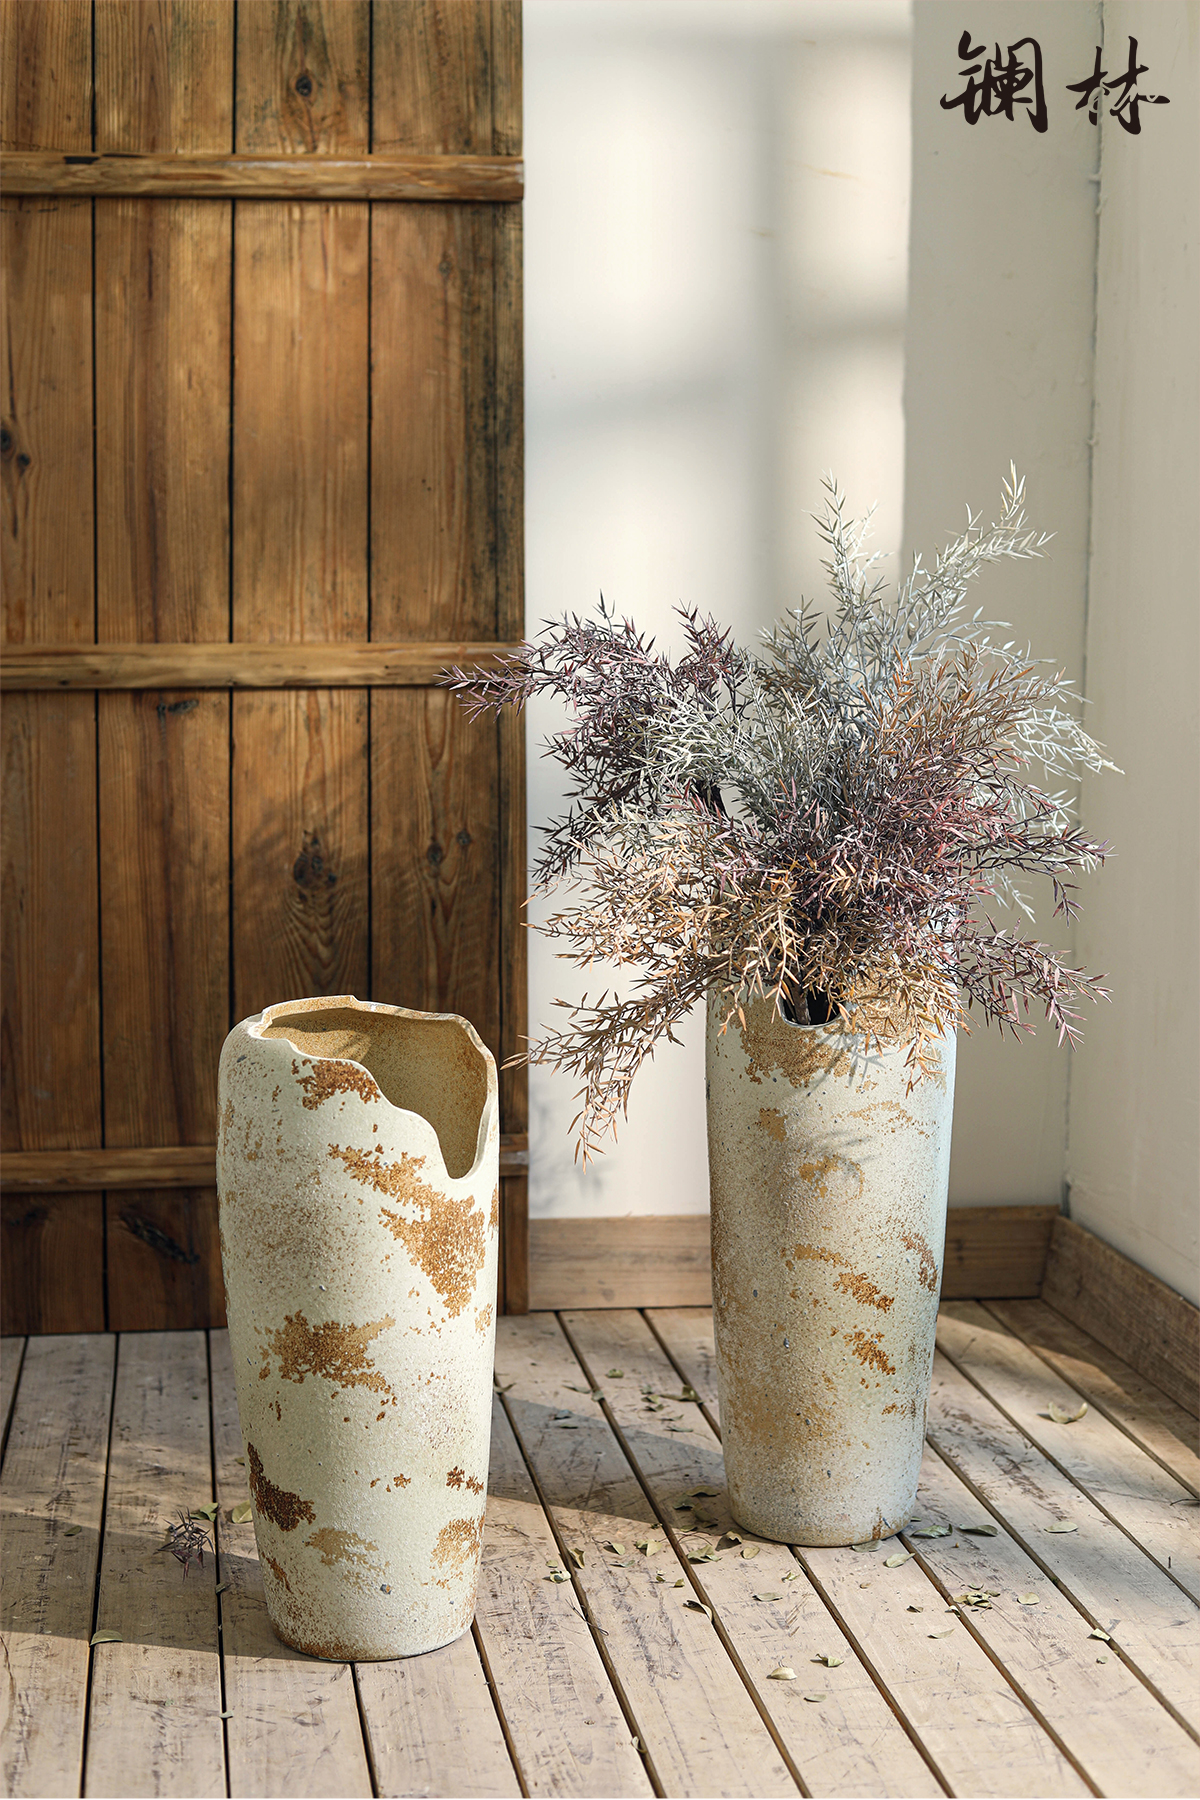 Chinese ceramic restoring ancient ways of large vase abnormity expressions using dry flower arranging flowers flesh POTS to the sitting room decorate ceramic furnishing articles